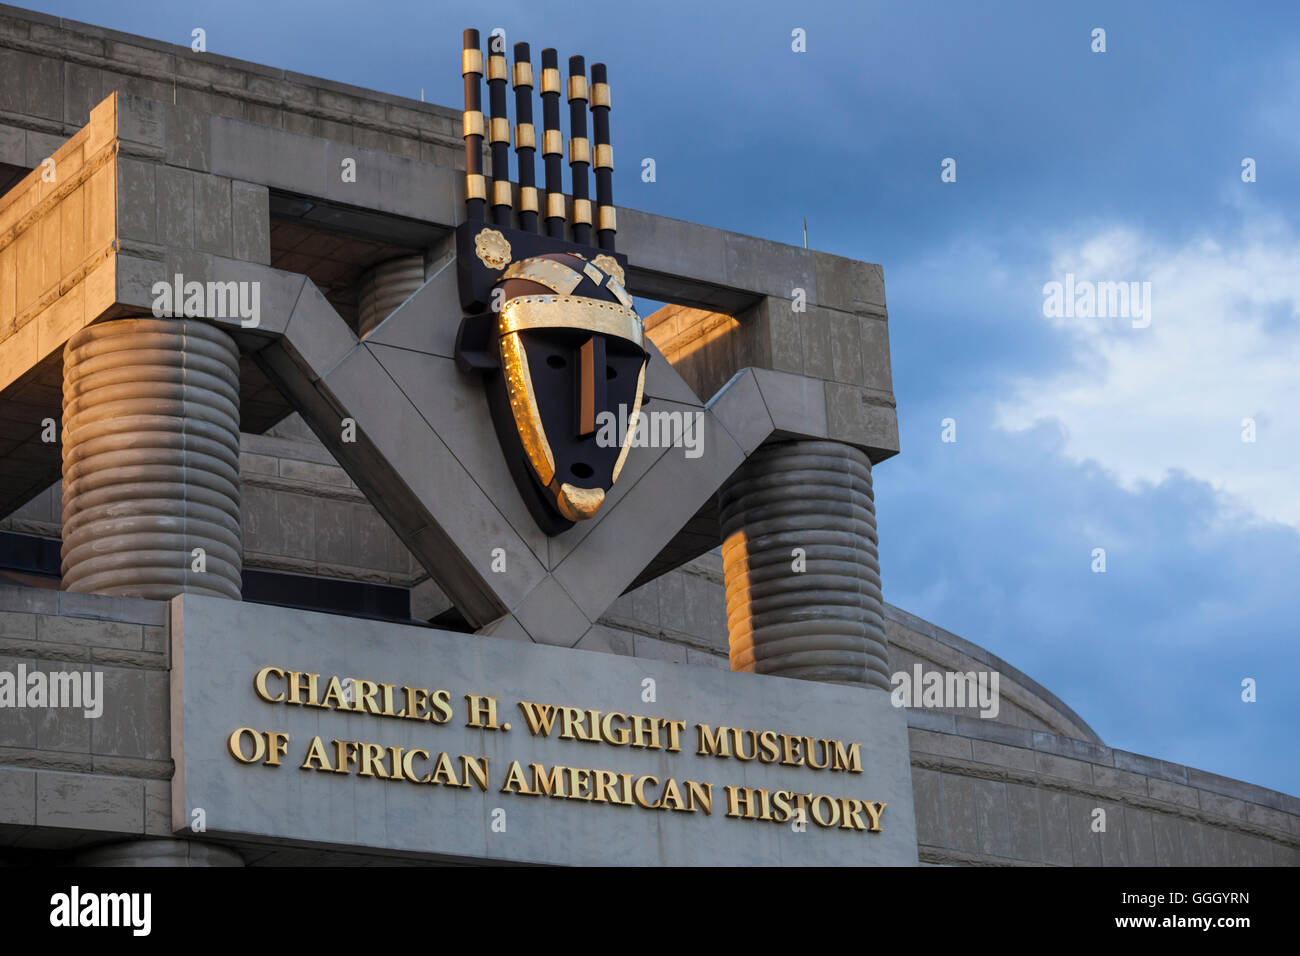 Detroit, Michigan - The Charles H. Wright Museum of African American History. - Stock Image